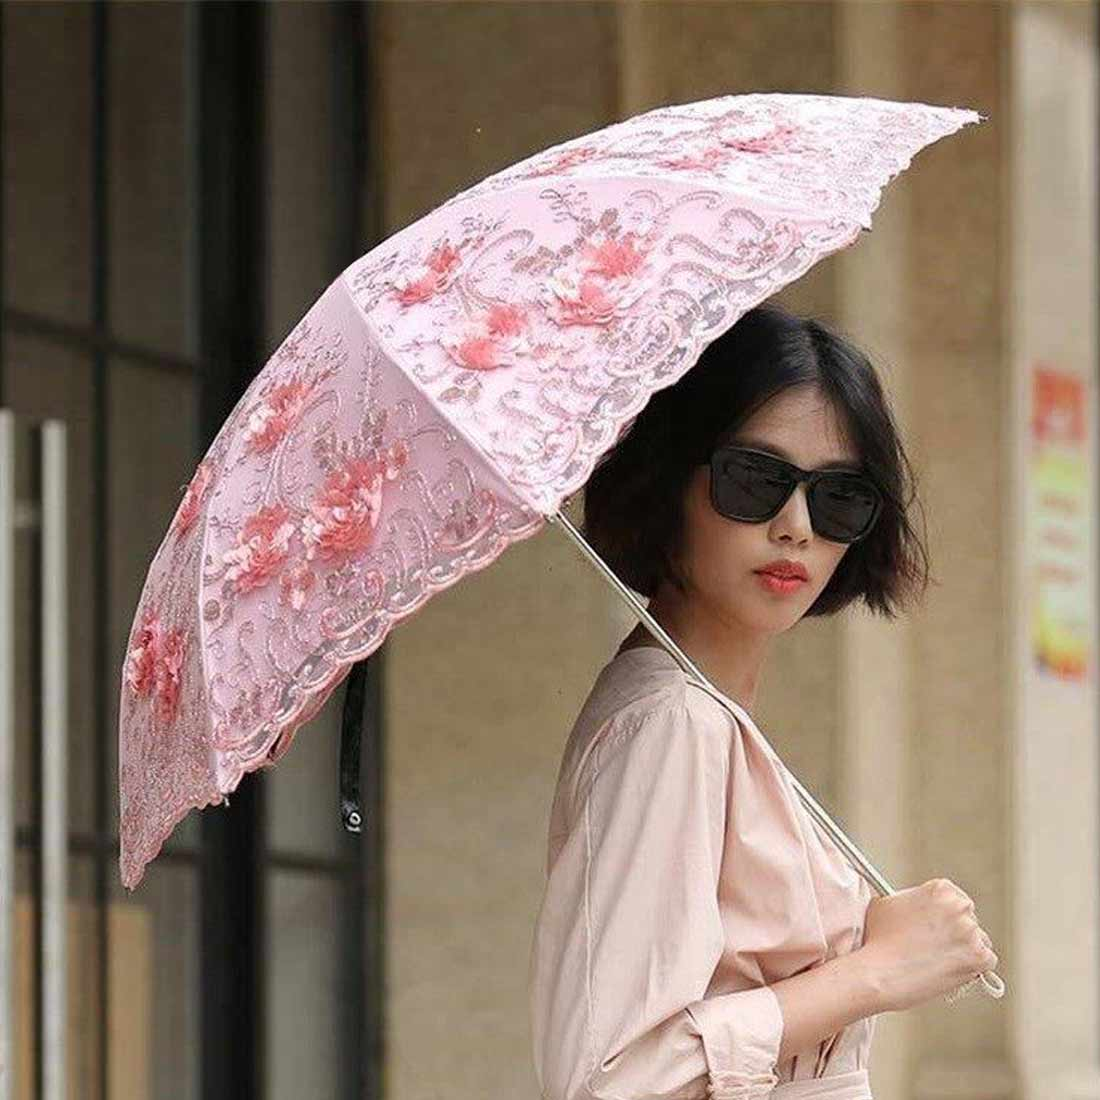 Embroider Pink Flower Print Pocket Umbrella Lace Flower Folding Umbrellas For Women Folding UV Protection Rainy Umbrella